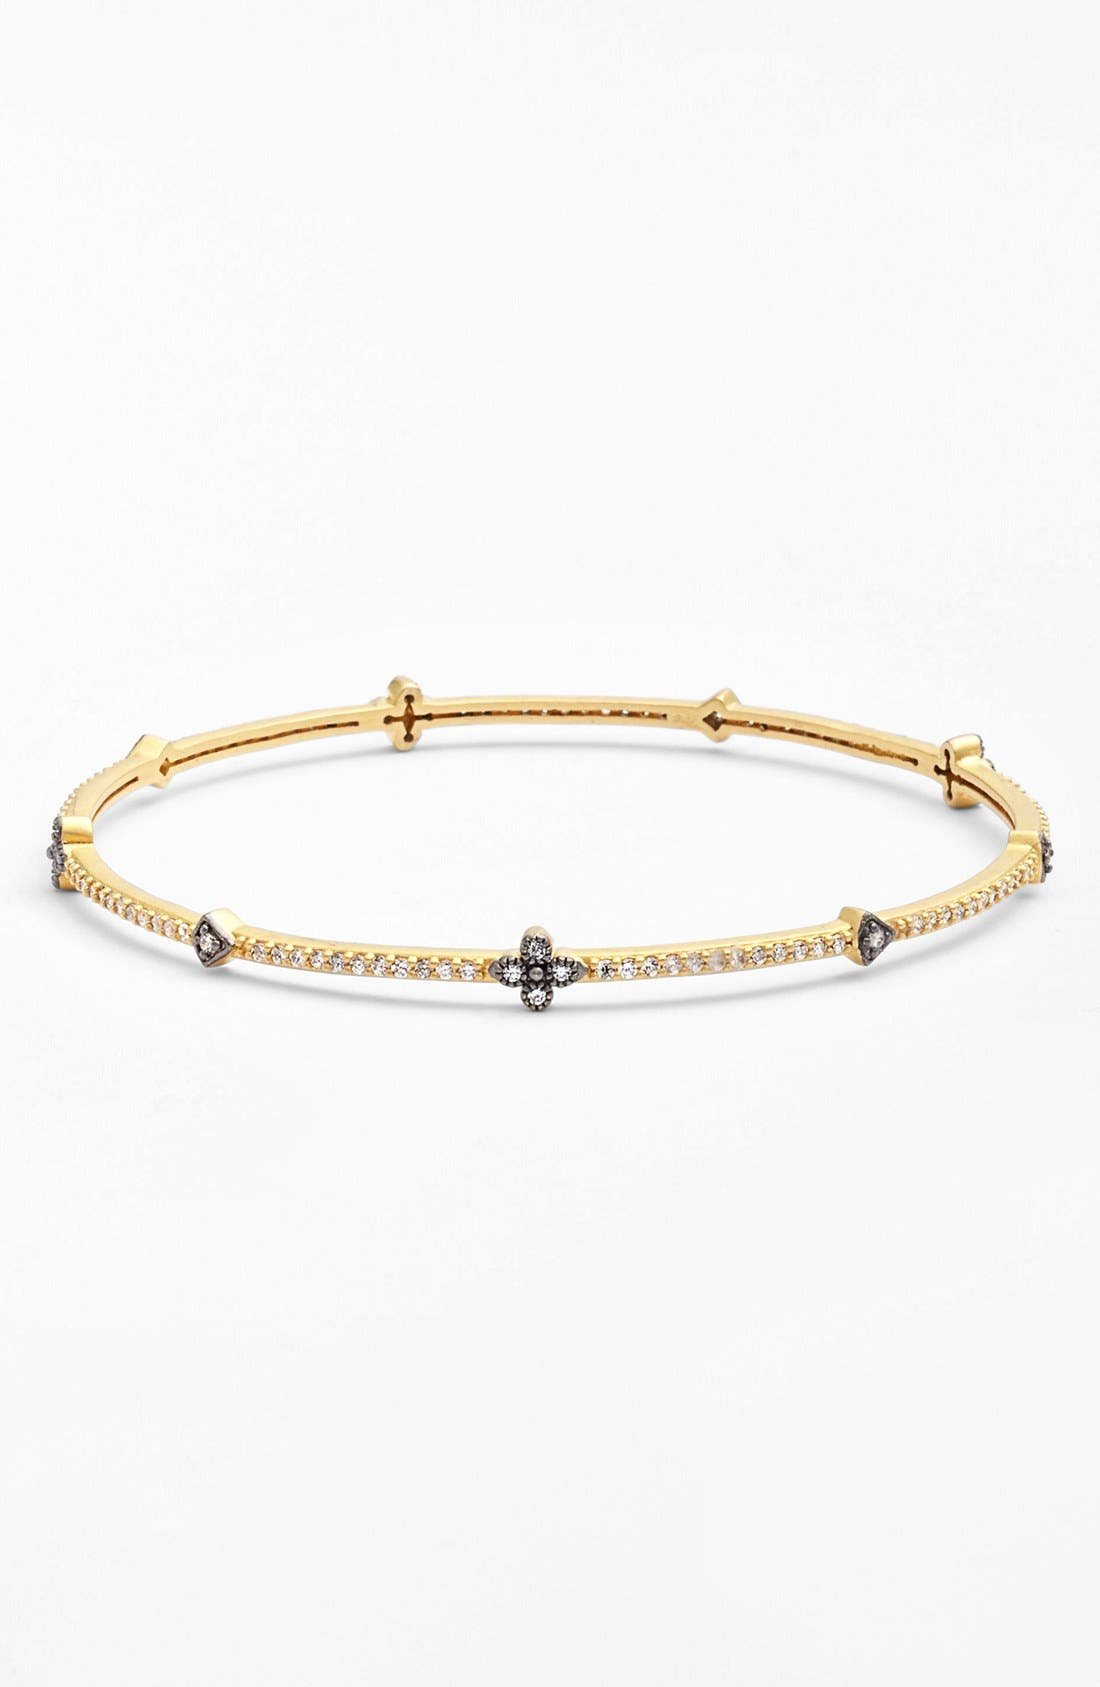 Clover Station Bangle,                             Main thumbnail 1, color,                             Gold/ Gunmetal